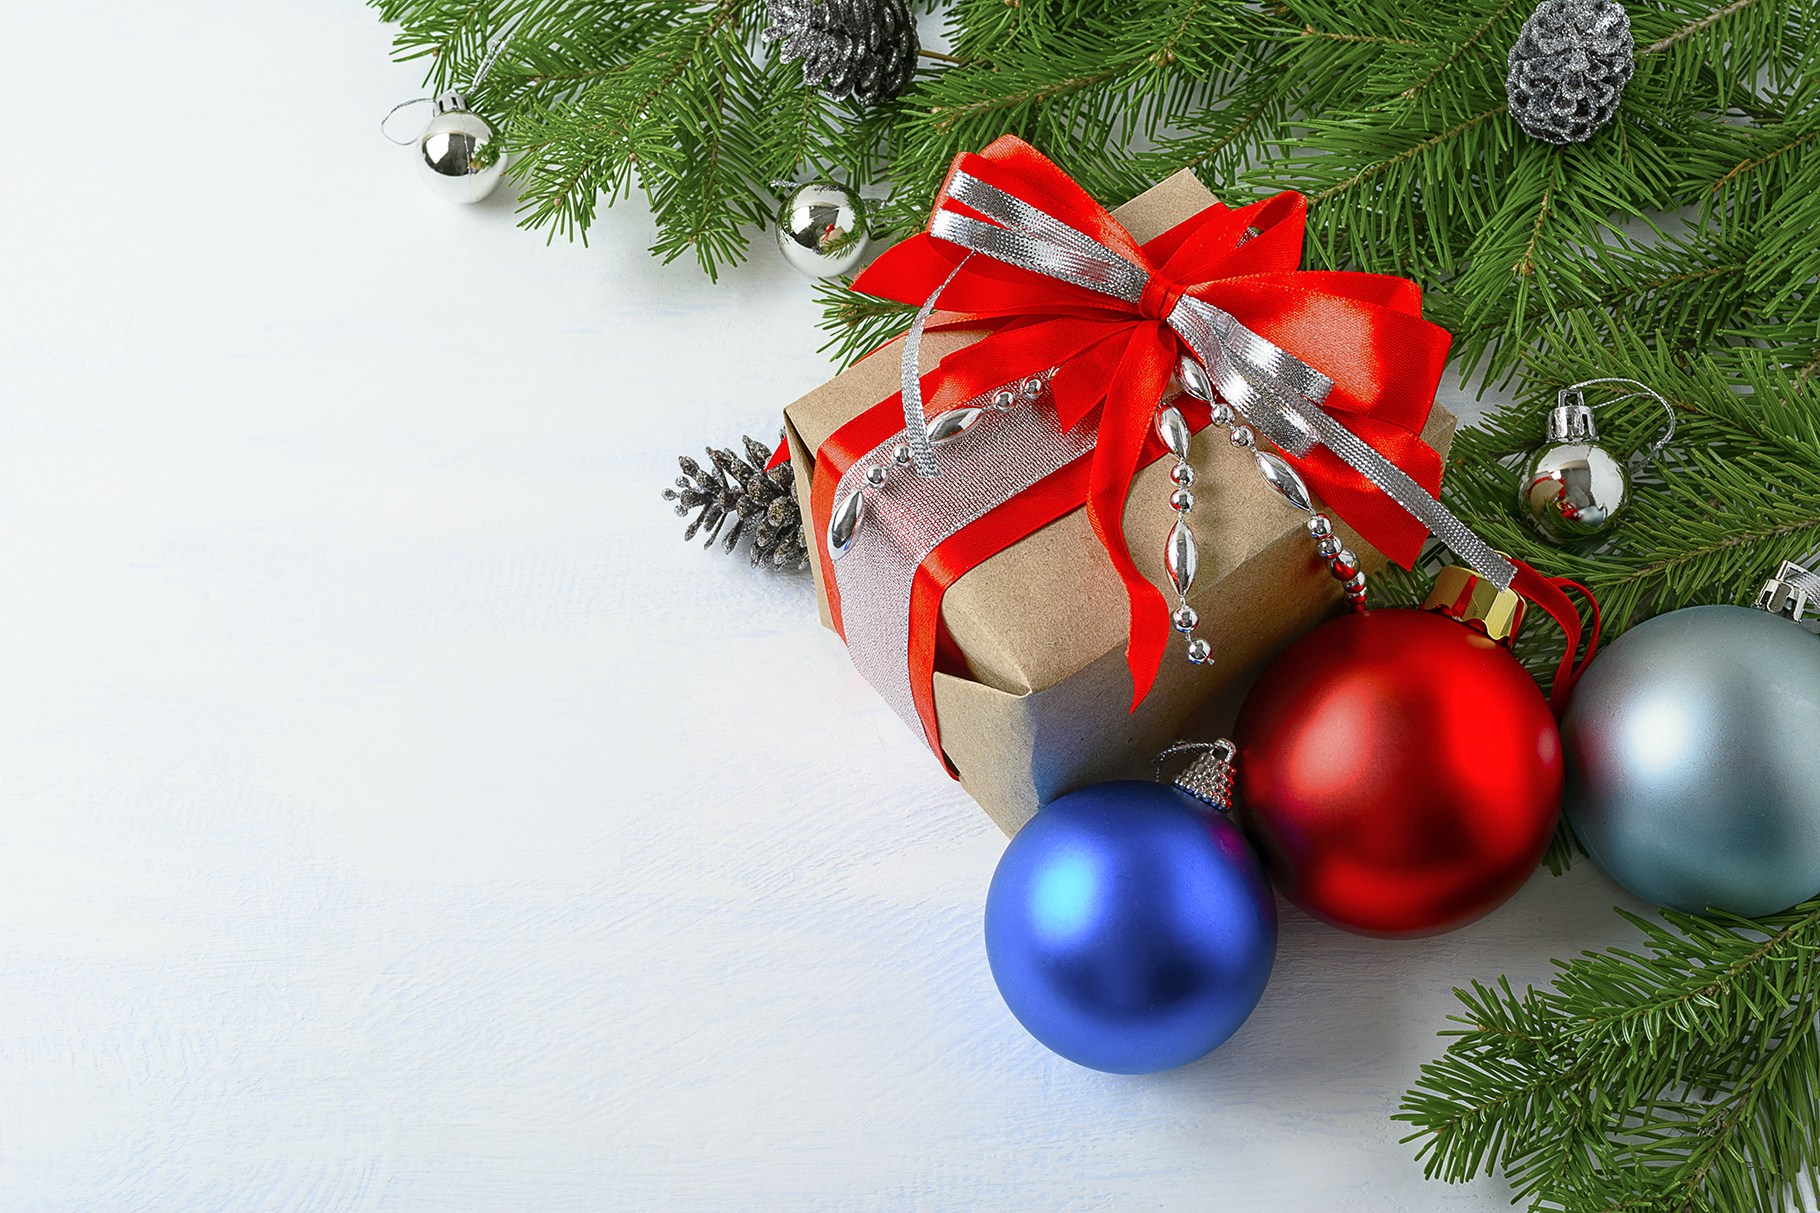 christmas background with gift box blue and red ornaments